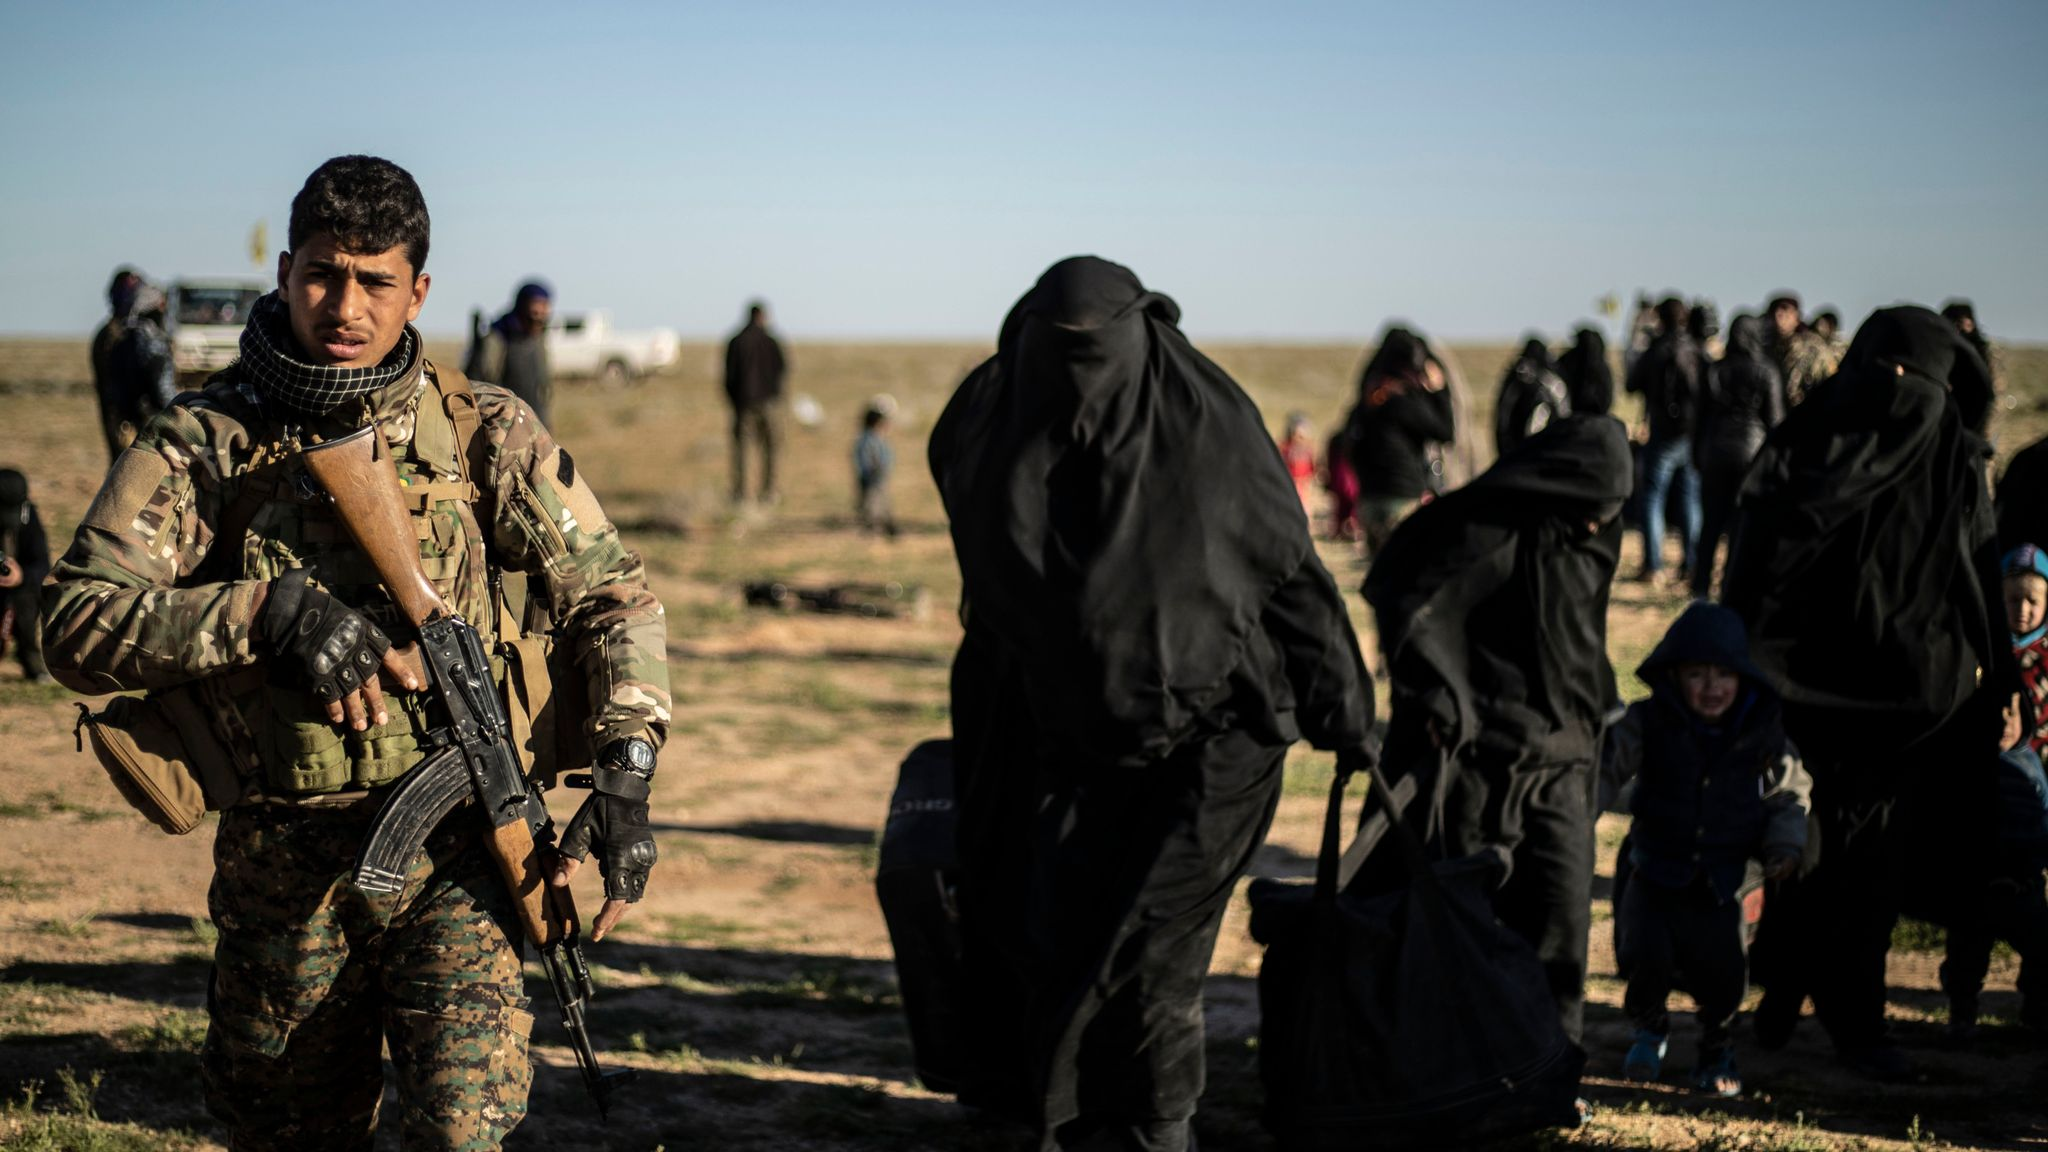 Death of IS leader is a key moment - but it's not the end of the fight